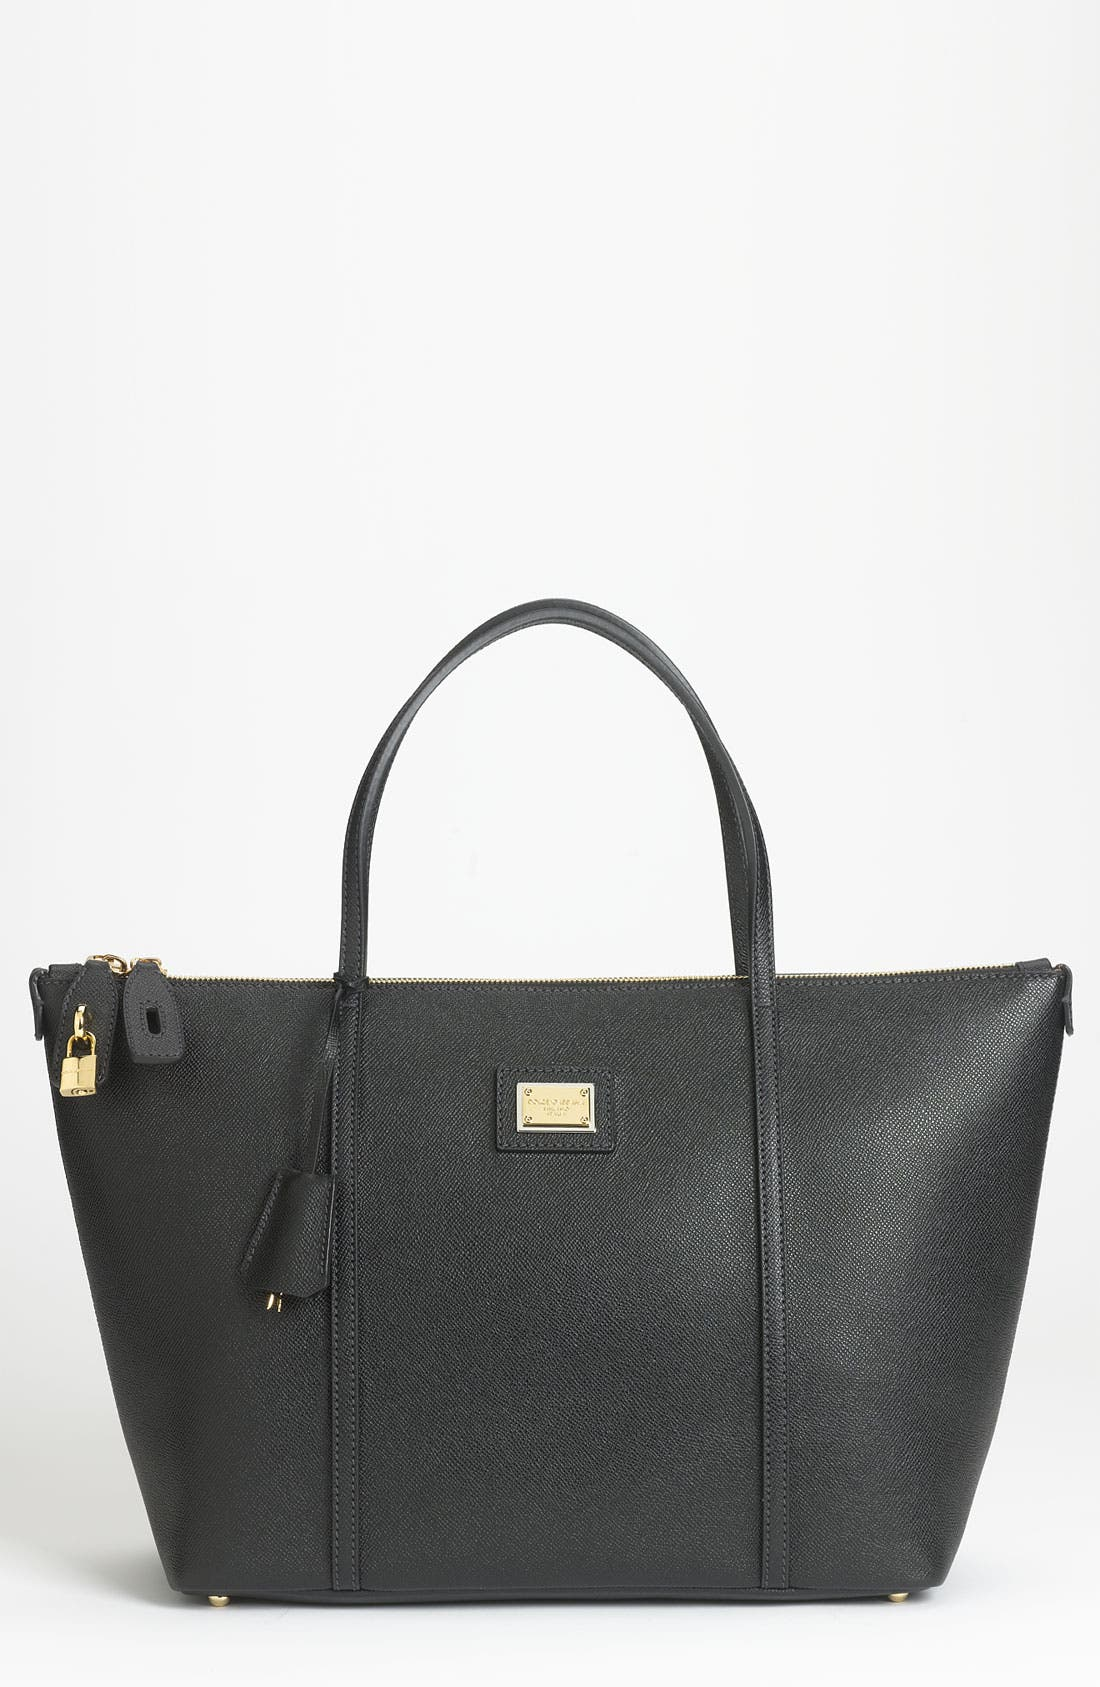 Main Image - Dolce&Gabbana 'Miss Escape - Classic' Leather Tote